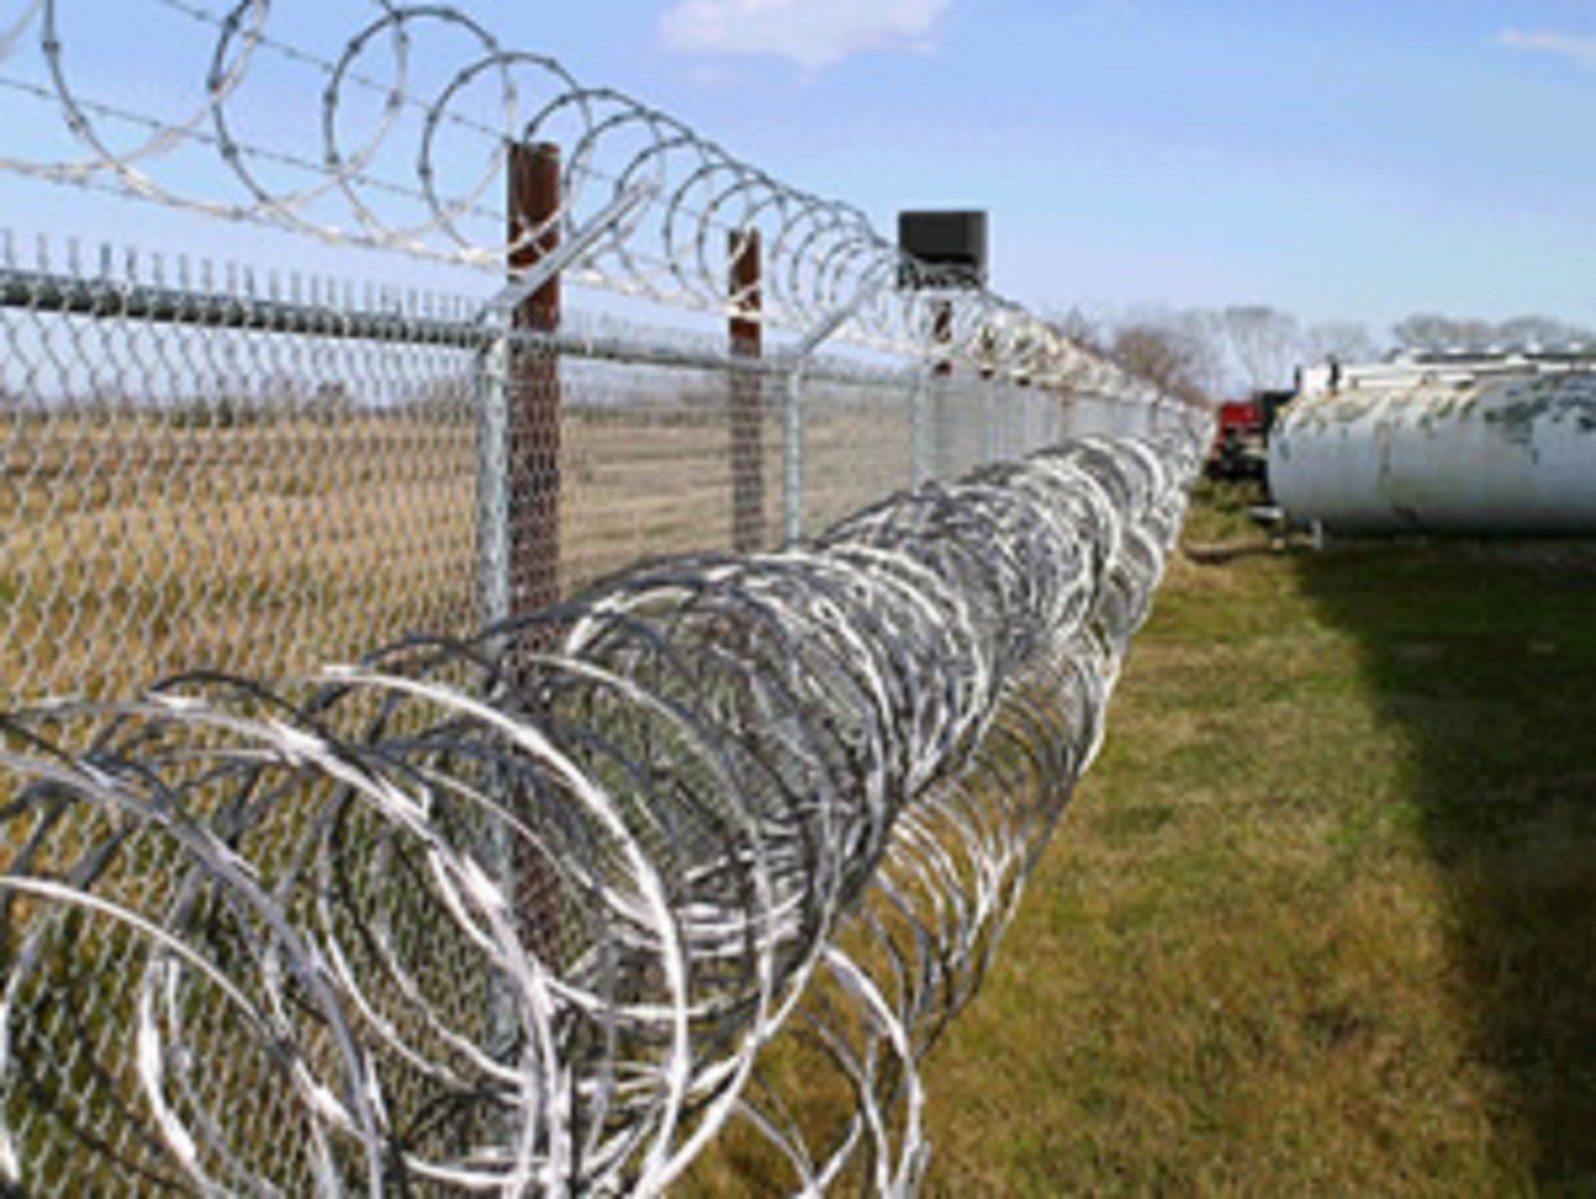 Free Razor Wire Fencing Stock Photo - FreeImages.com